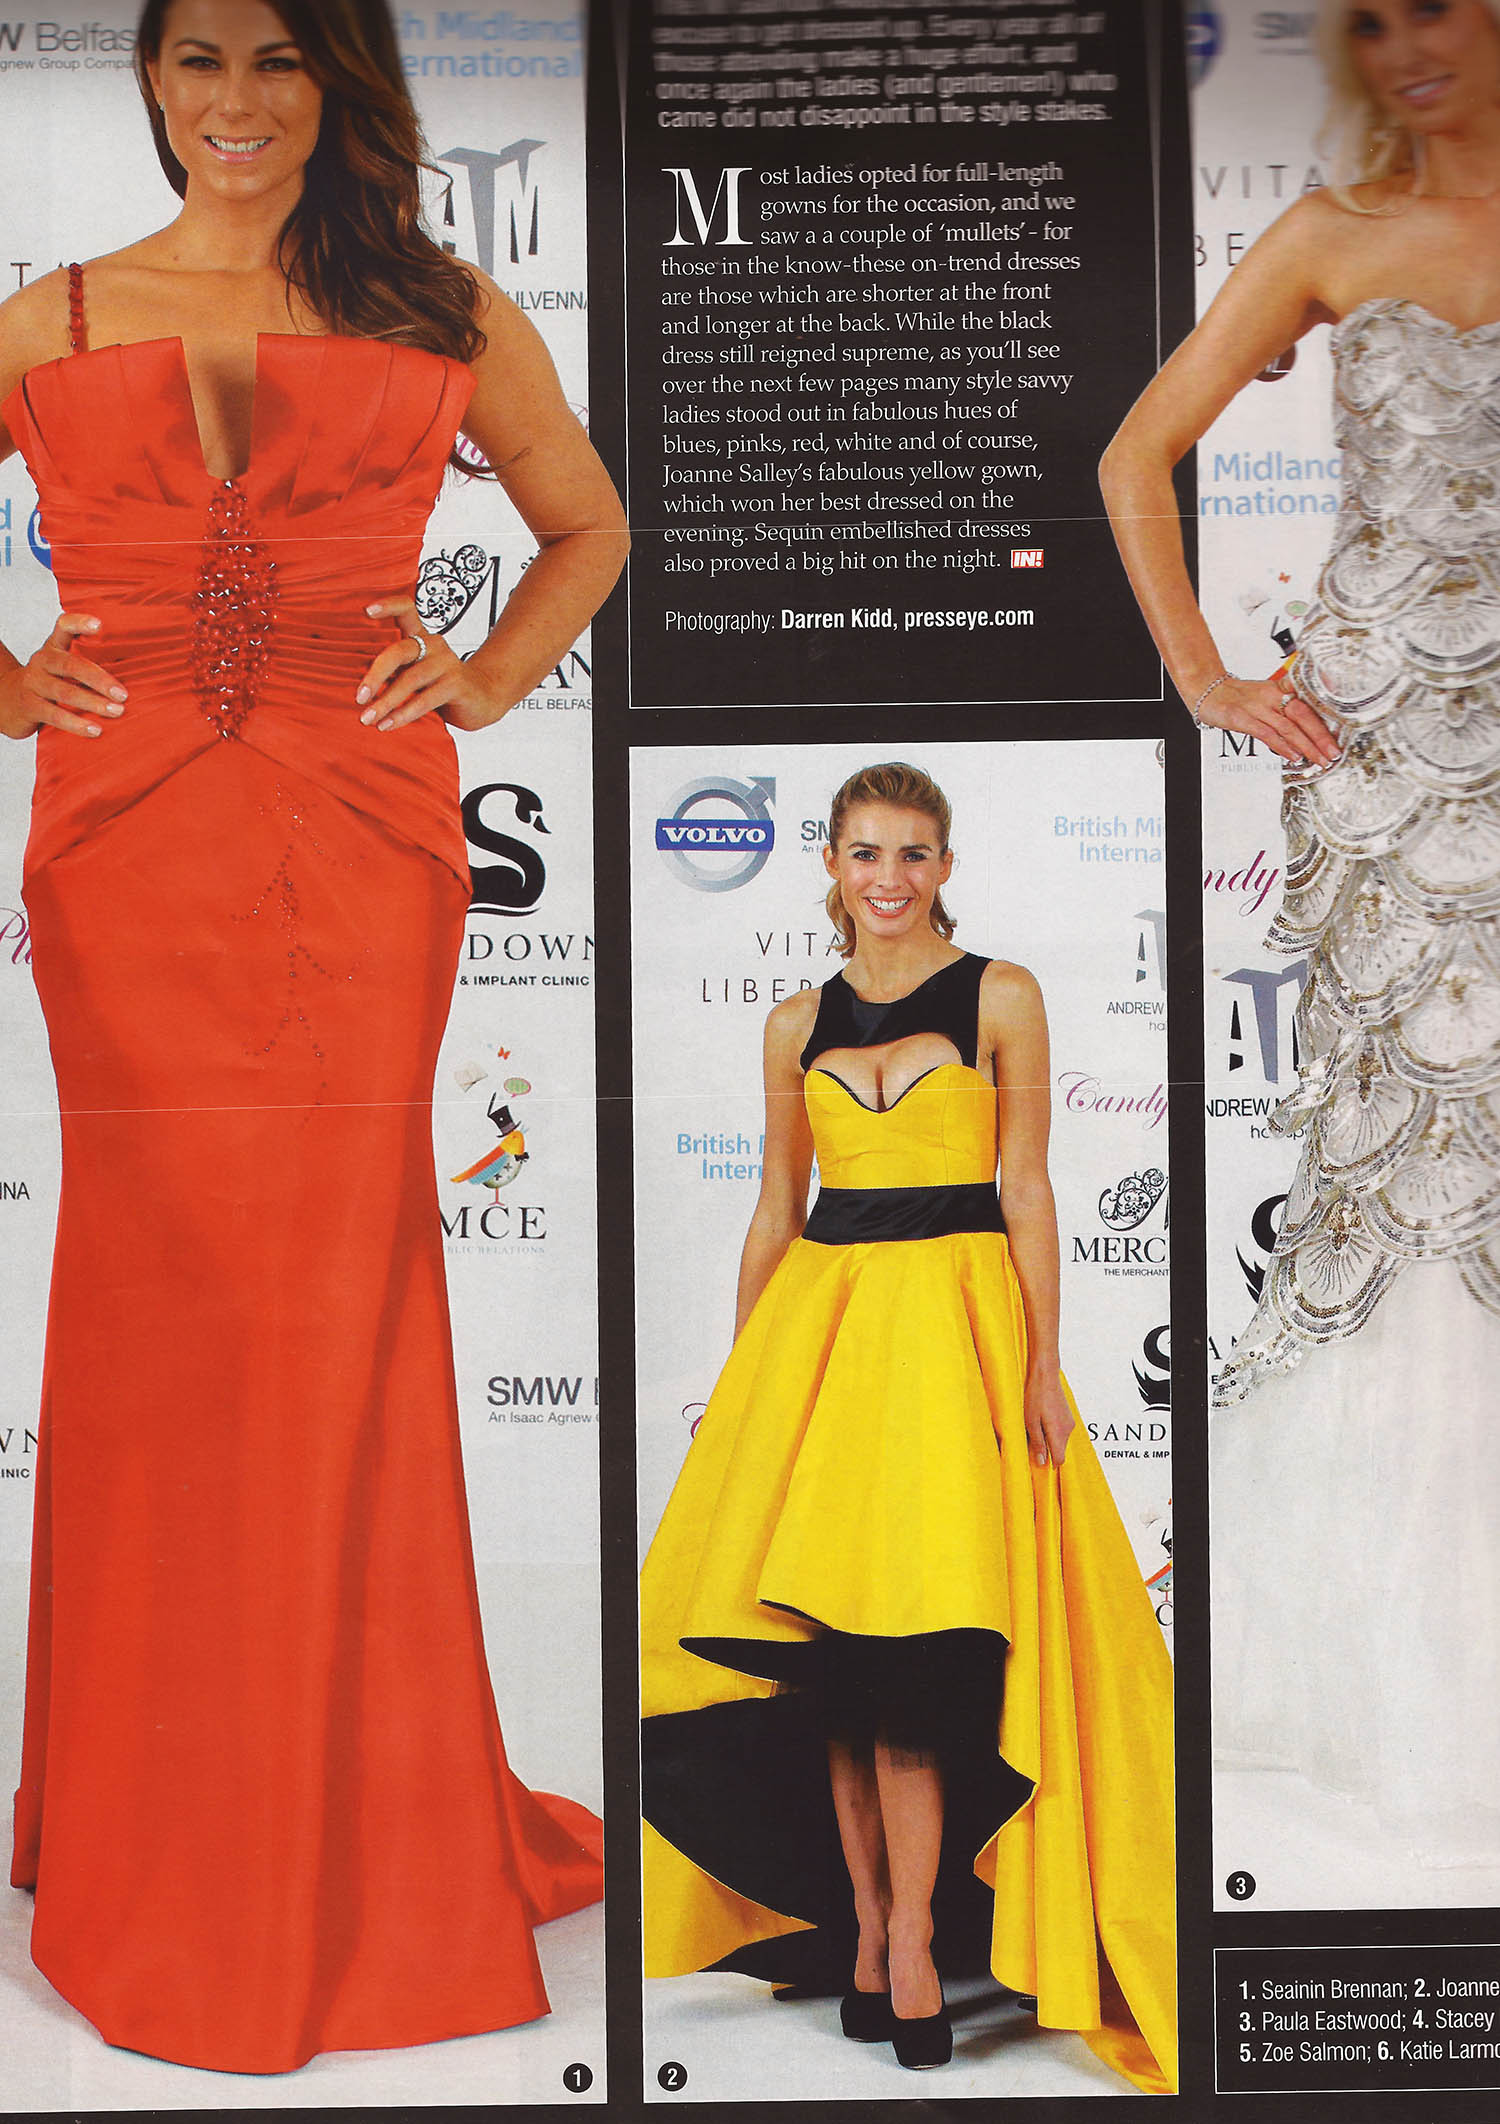 Joanne Salley IN Glamour Awards Best Dressed on the night wearing RUEDI yellow dress - IN! Magazine, Nov 2011